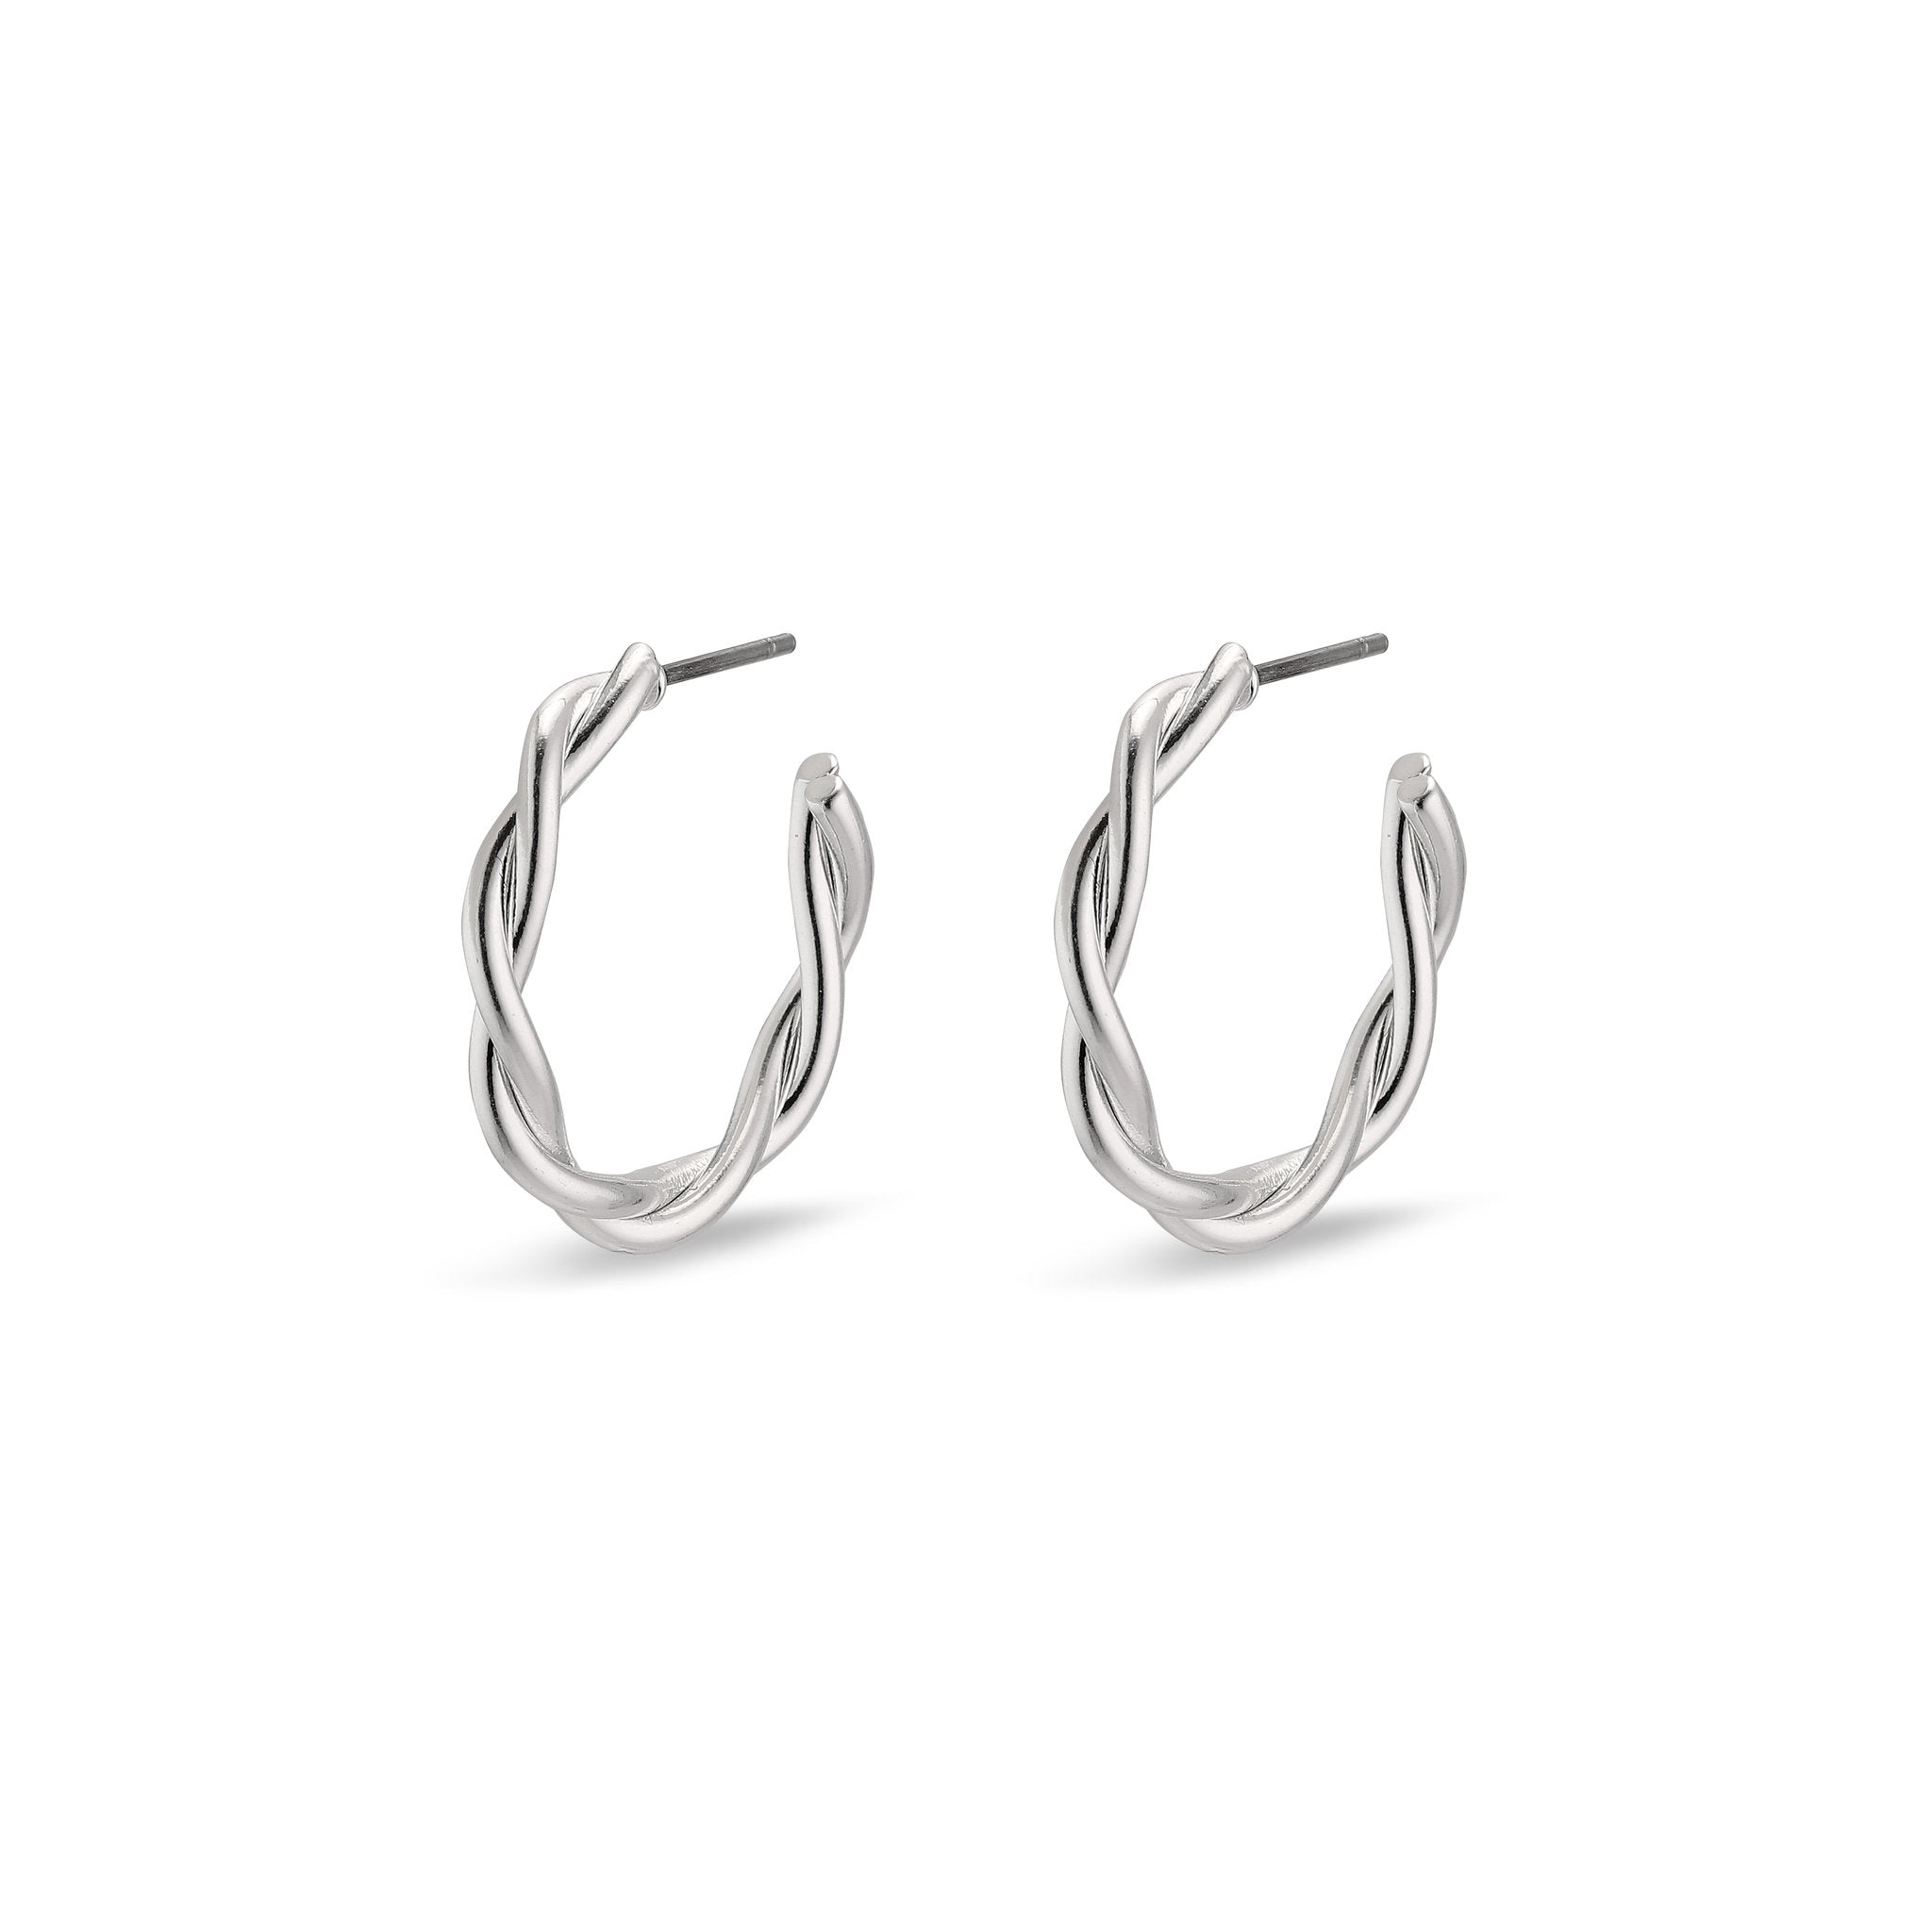 Naja Pi Hoops - Silver Plated - Small